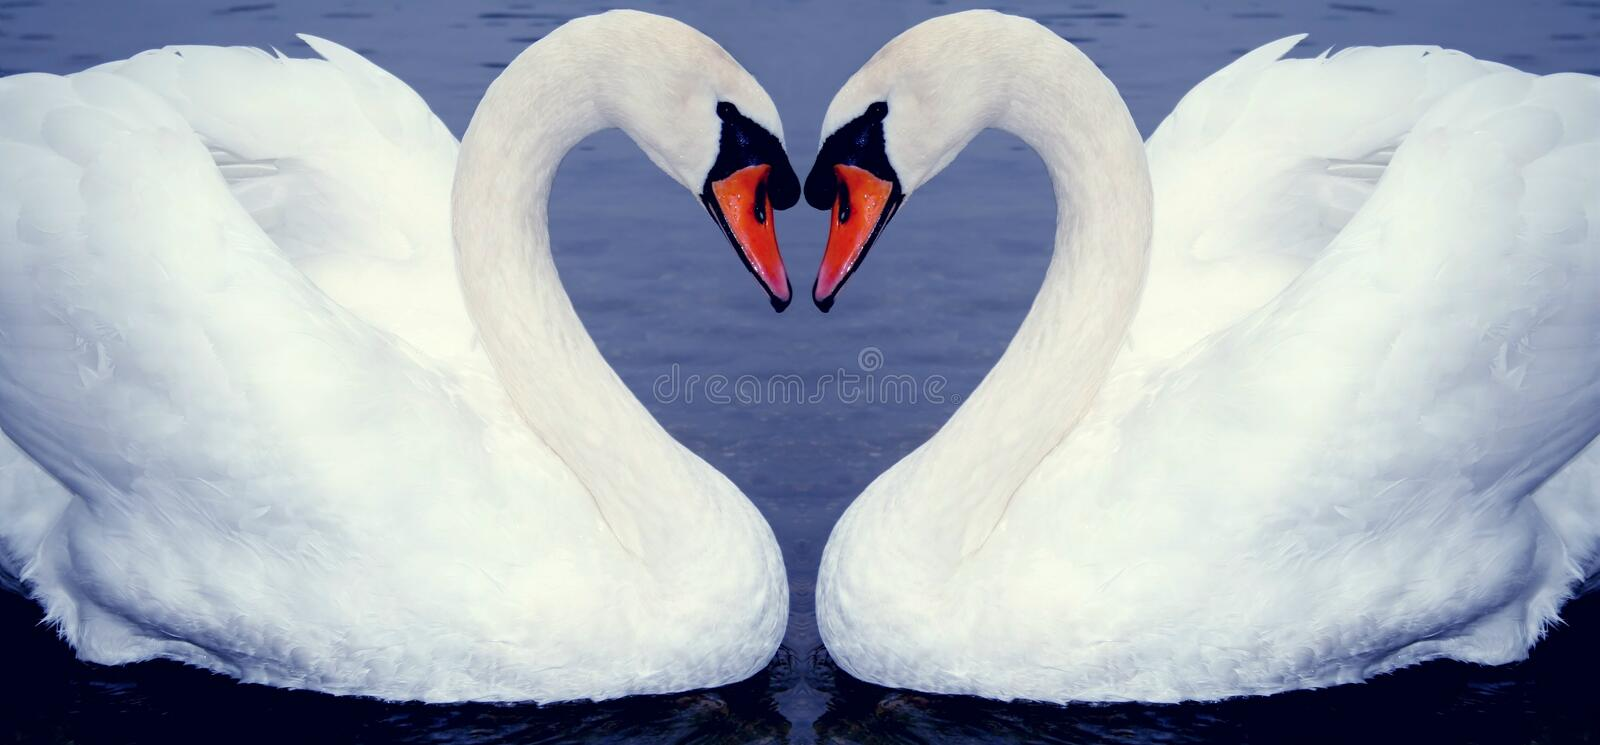 Swan heart's royalty free stock photos